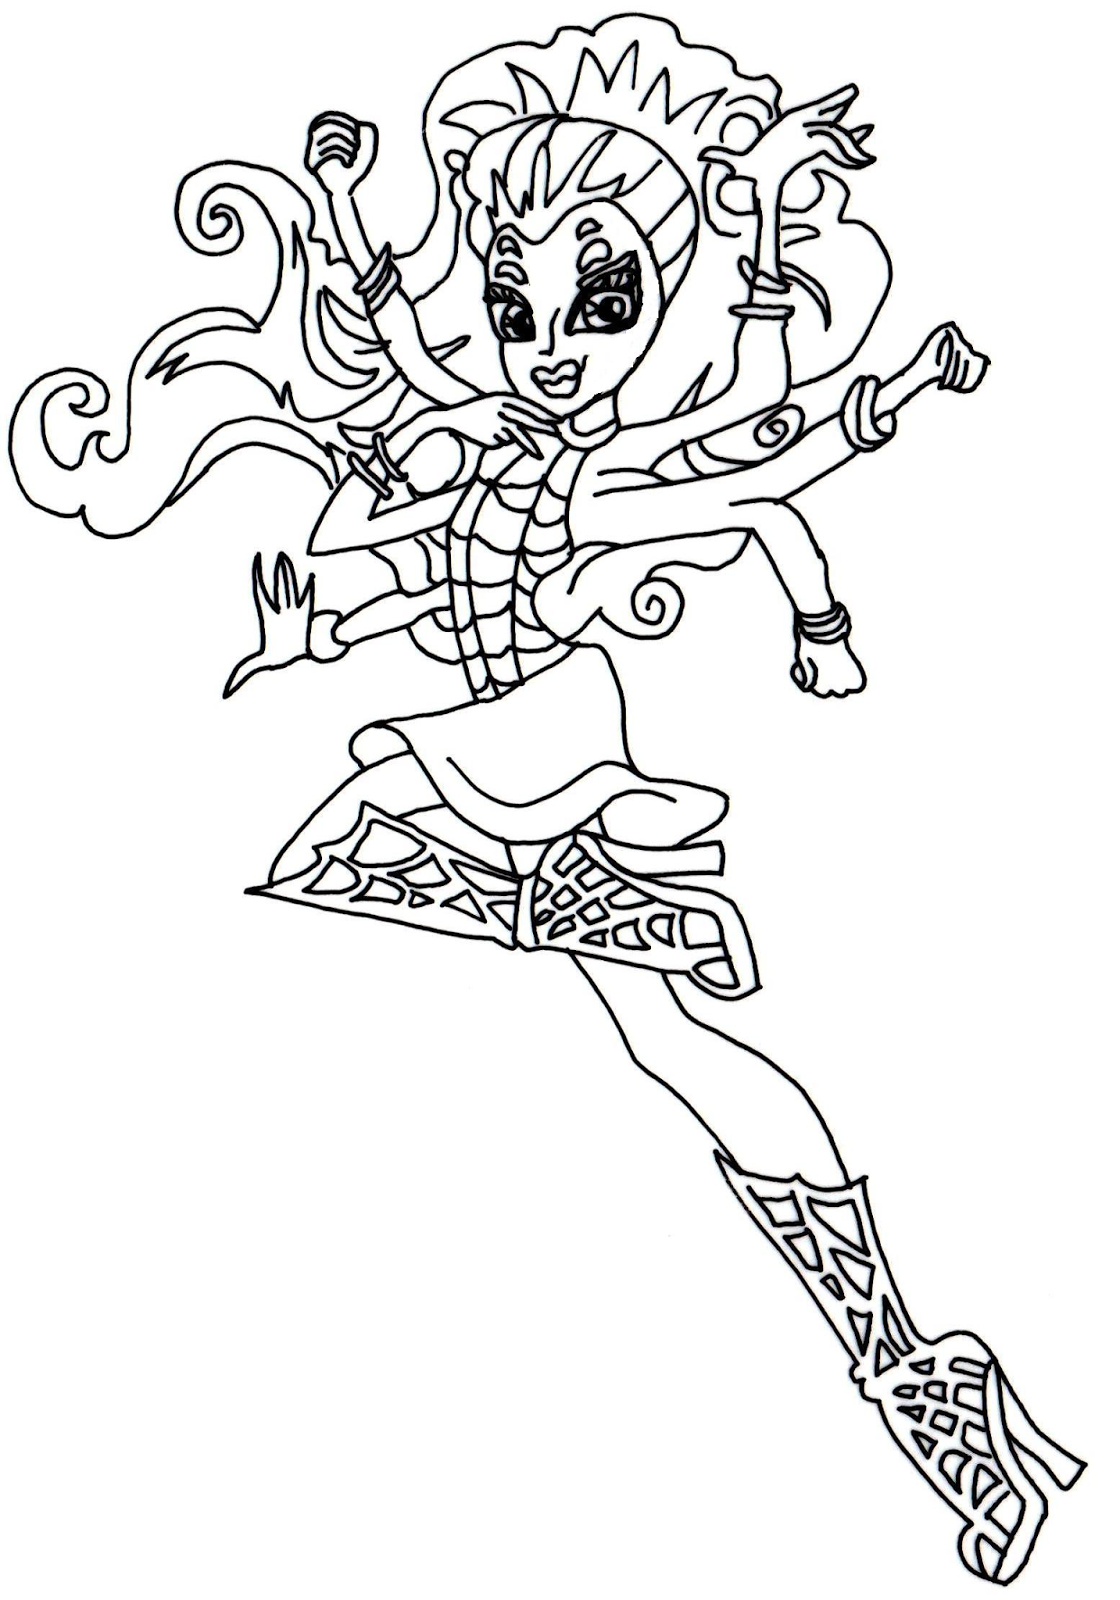 New Monster High Dolls Coloring Pages Webarella Monster High Coloring Sheet